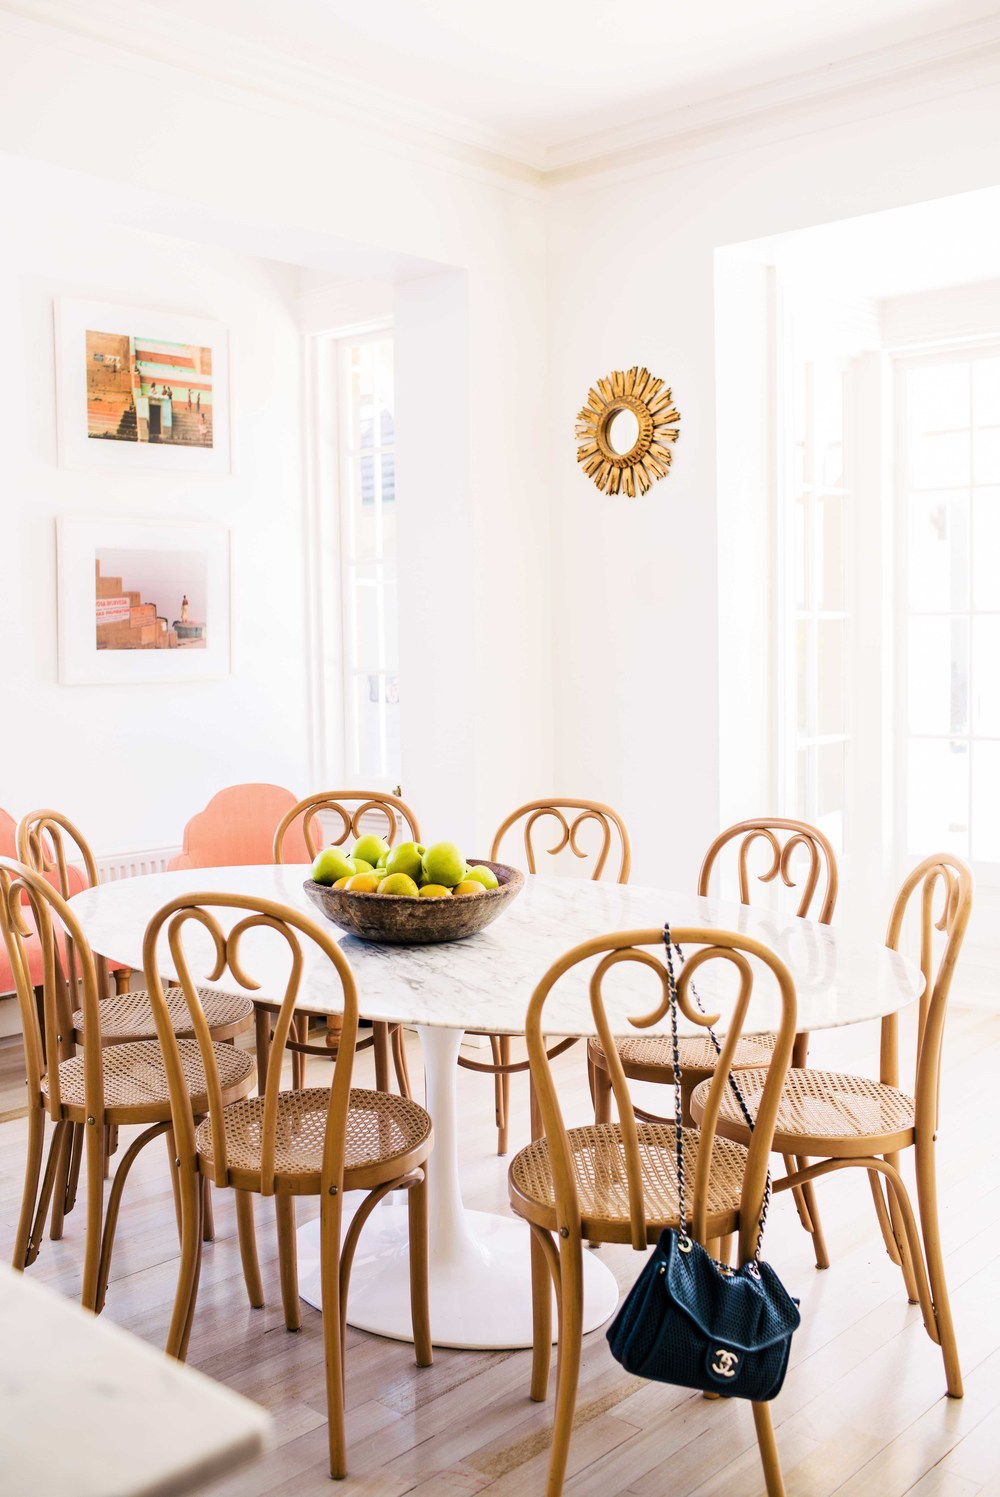 Dining room with bentwood chairs and marble table